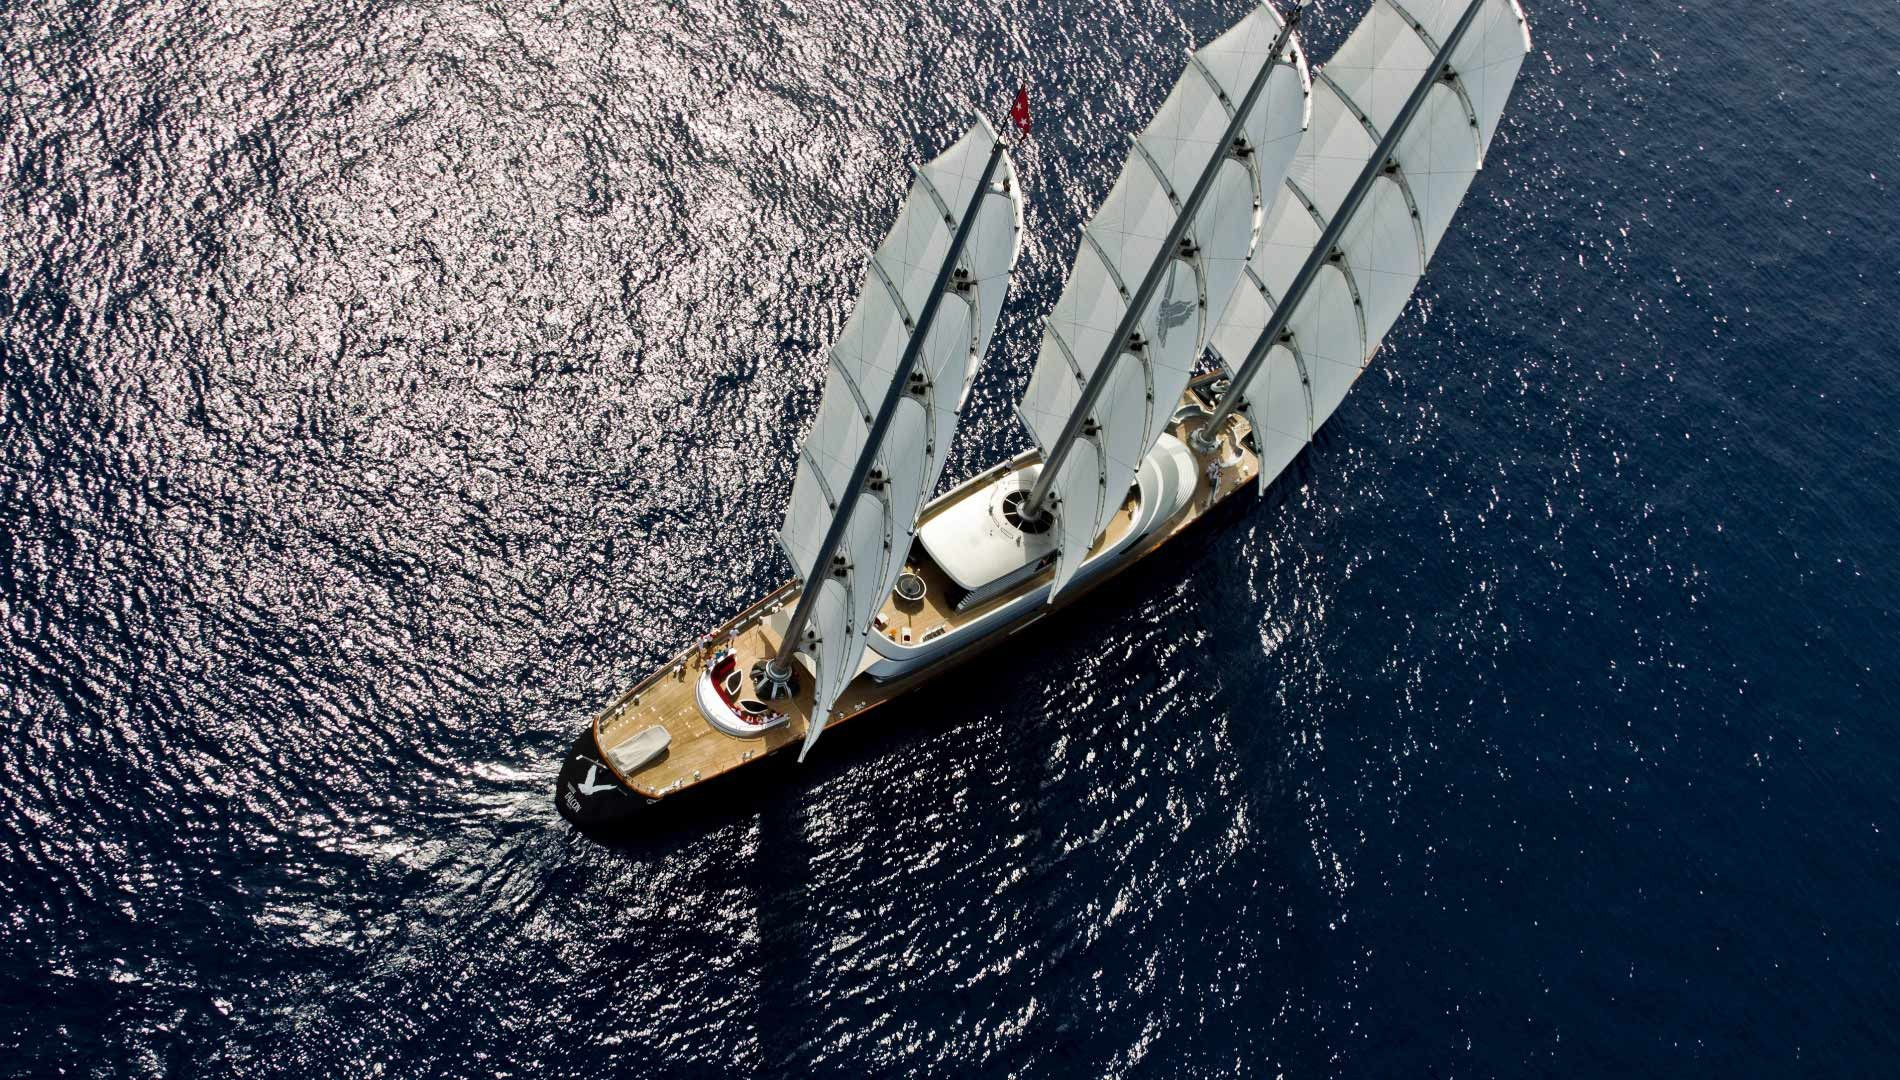 the thrill of high tech sailing